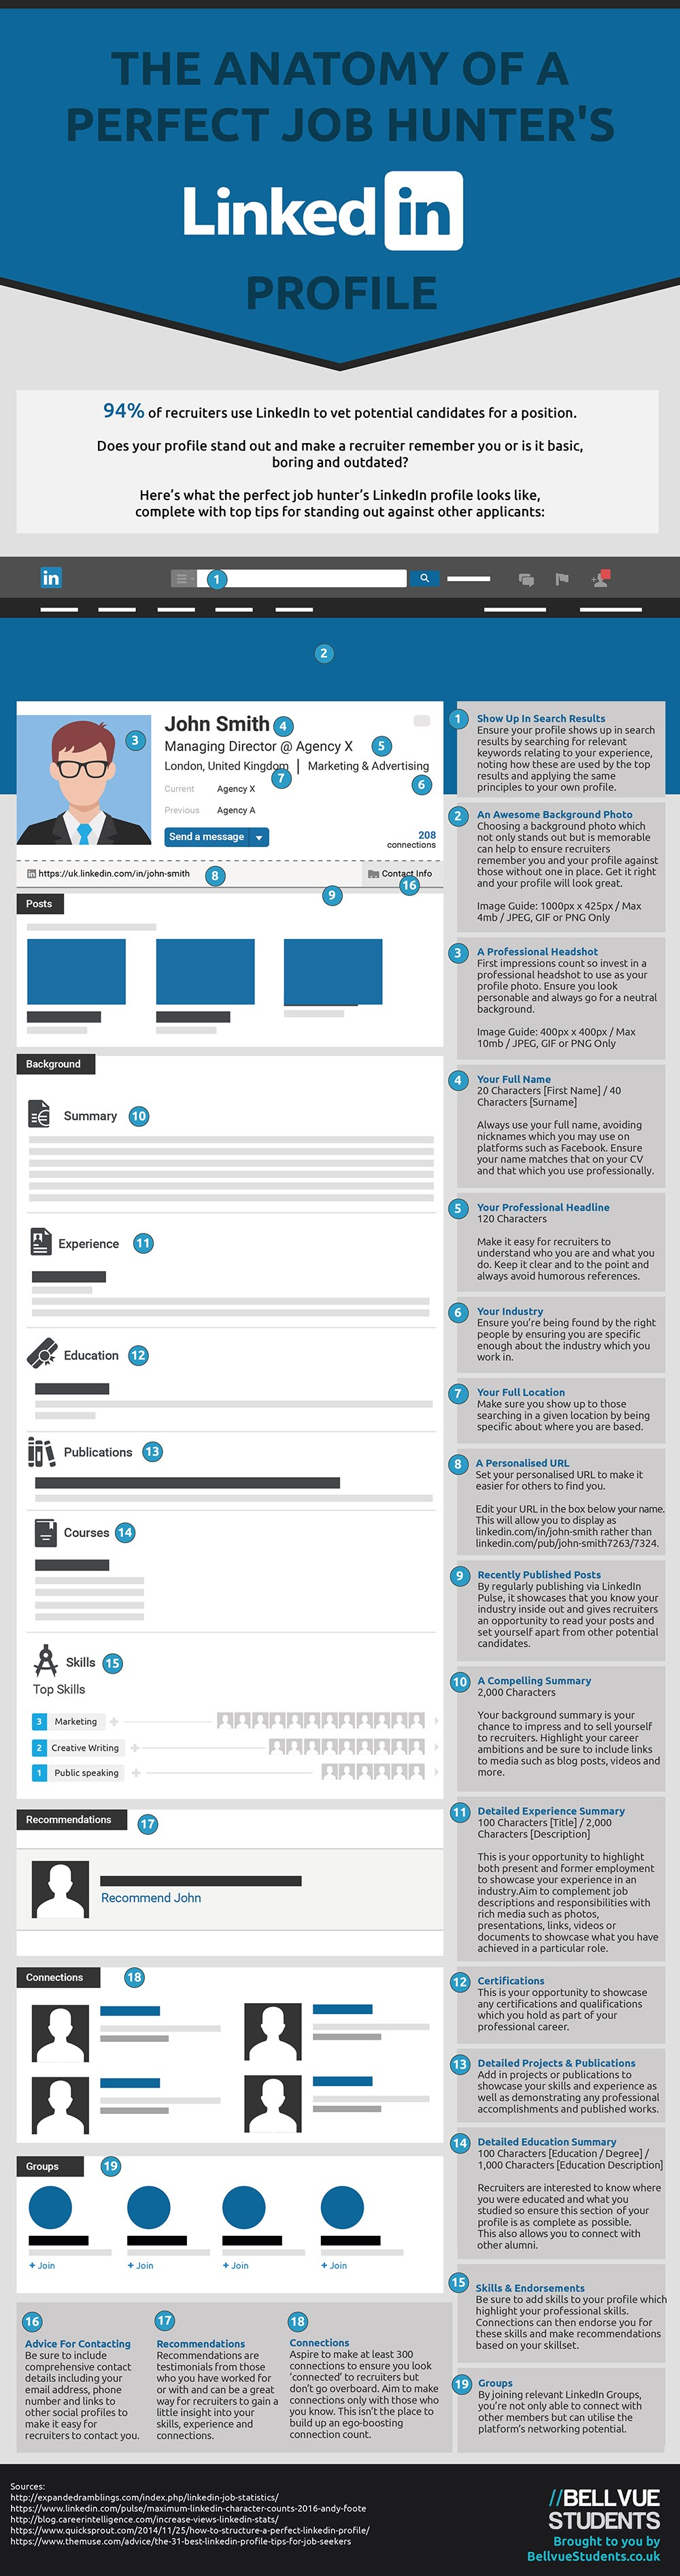 The Anatomy of a Perfect Job Hunter's Linkedin Profile - #Infographic